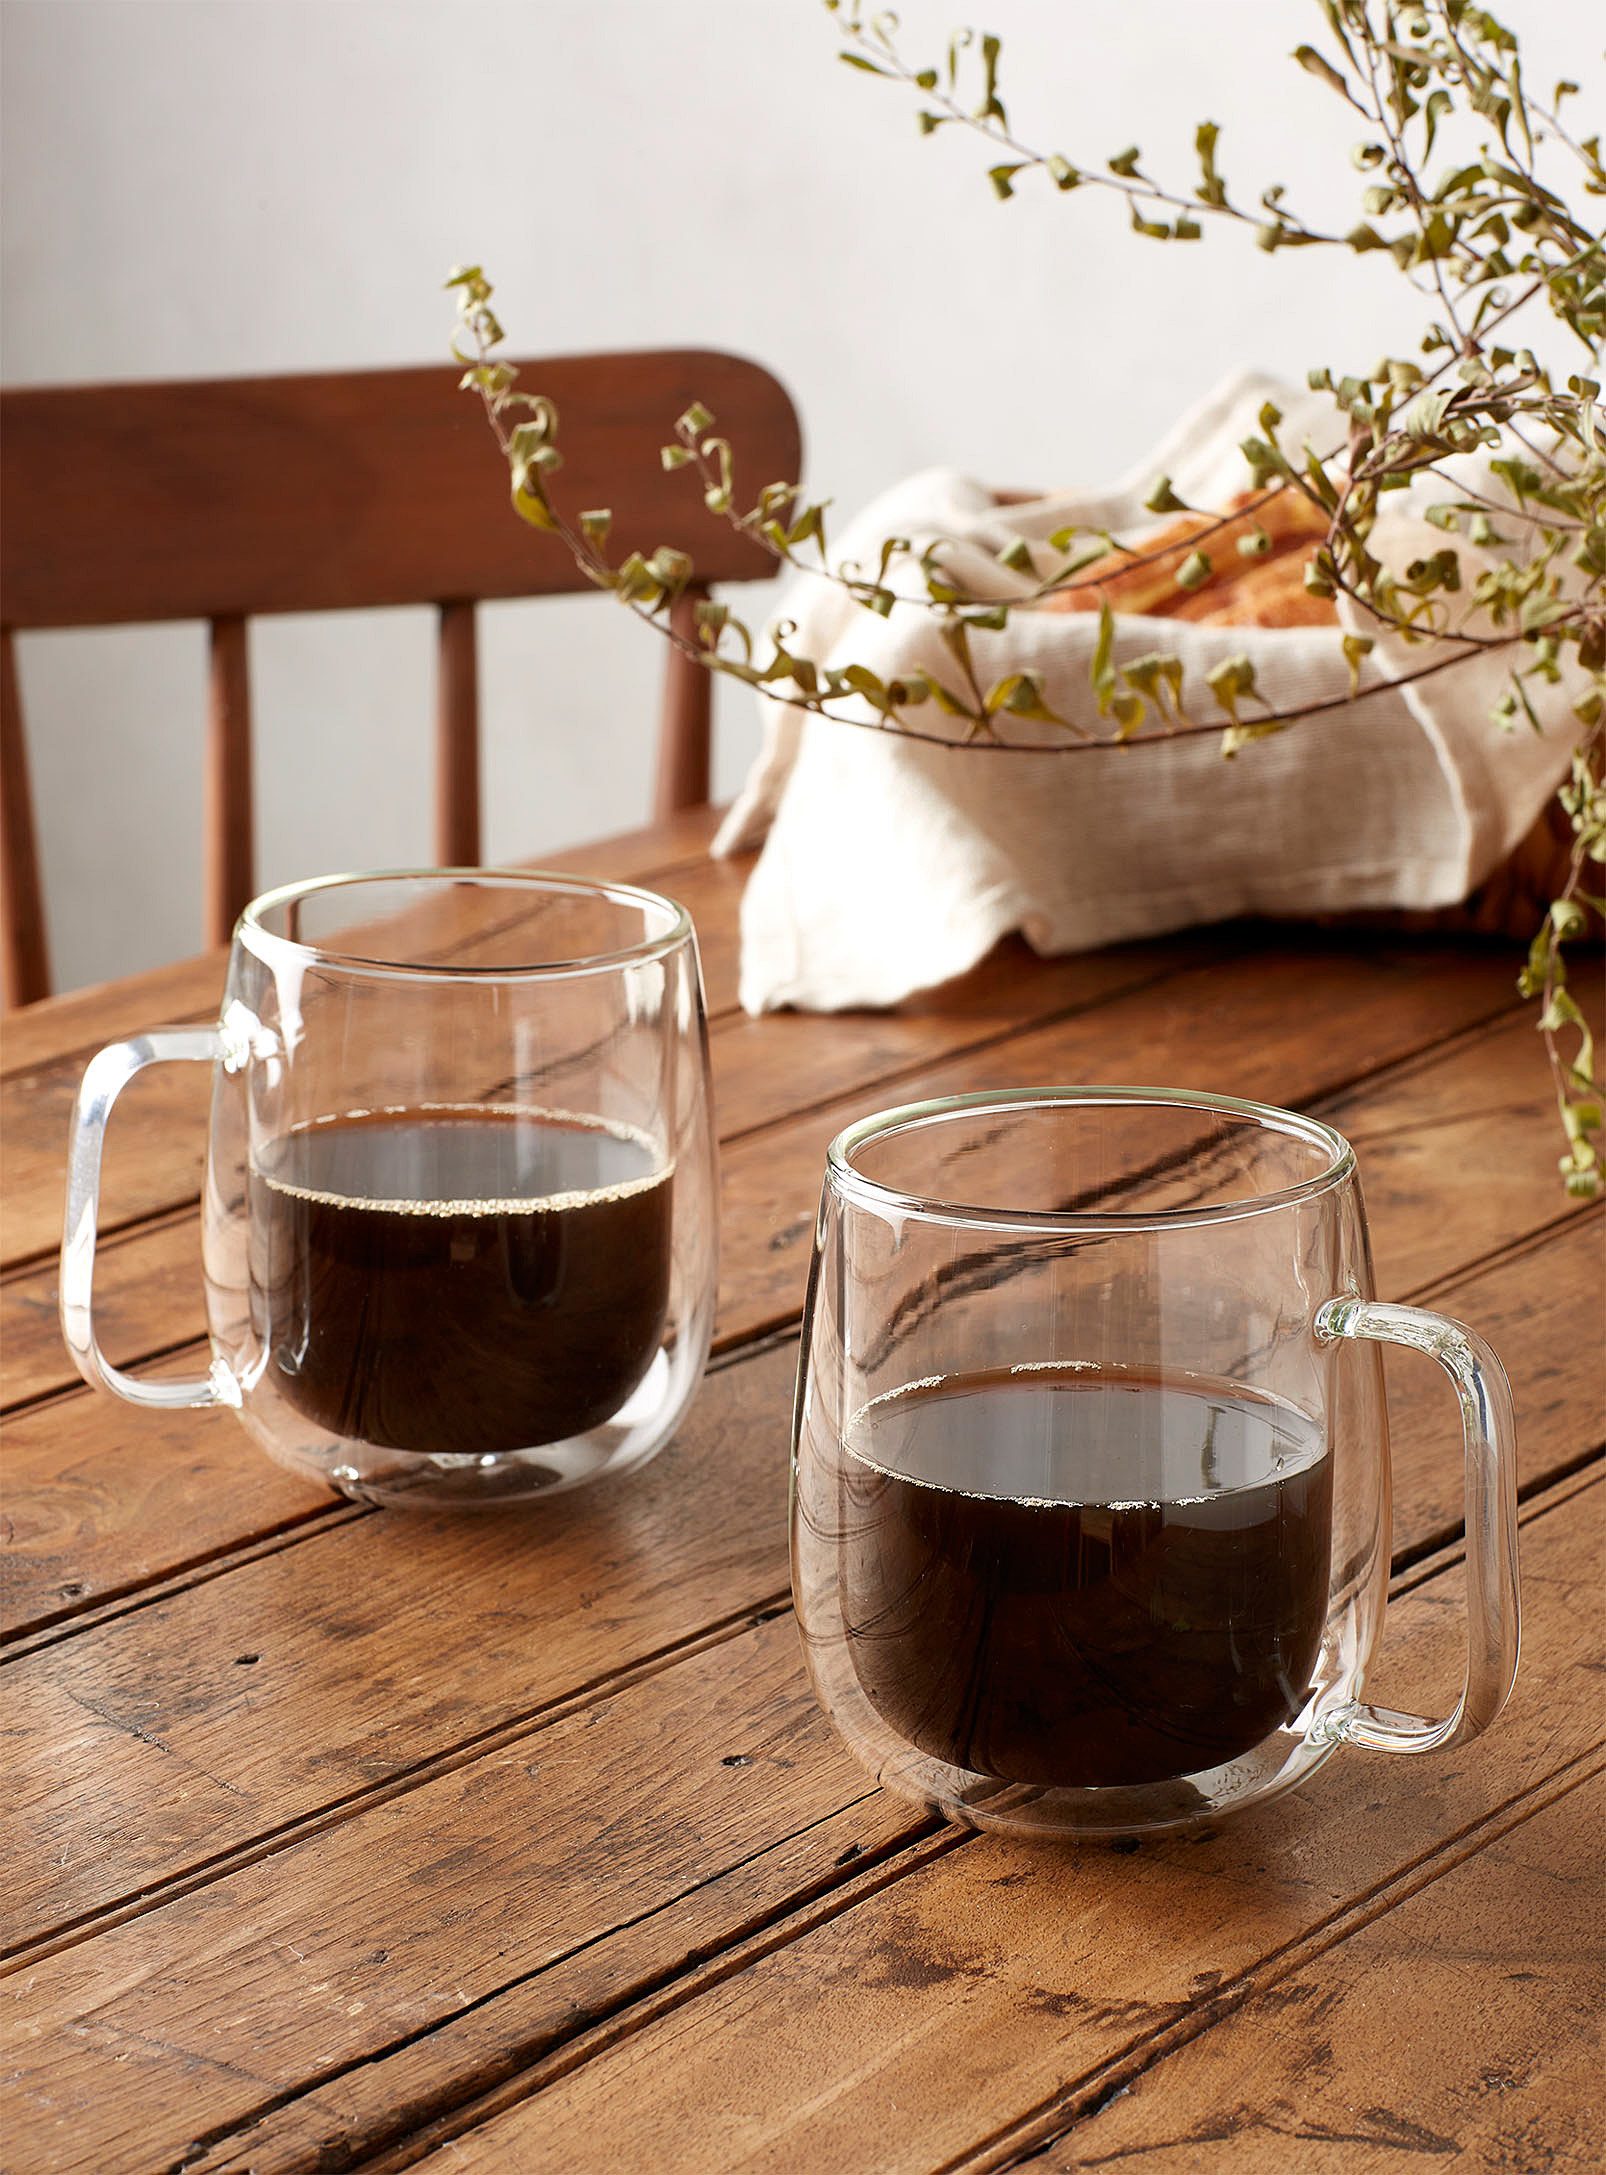 Two glass mugs of coffee on a wooden table